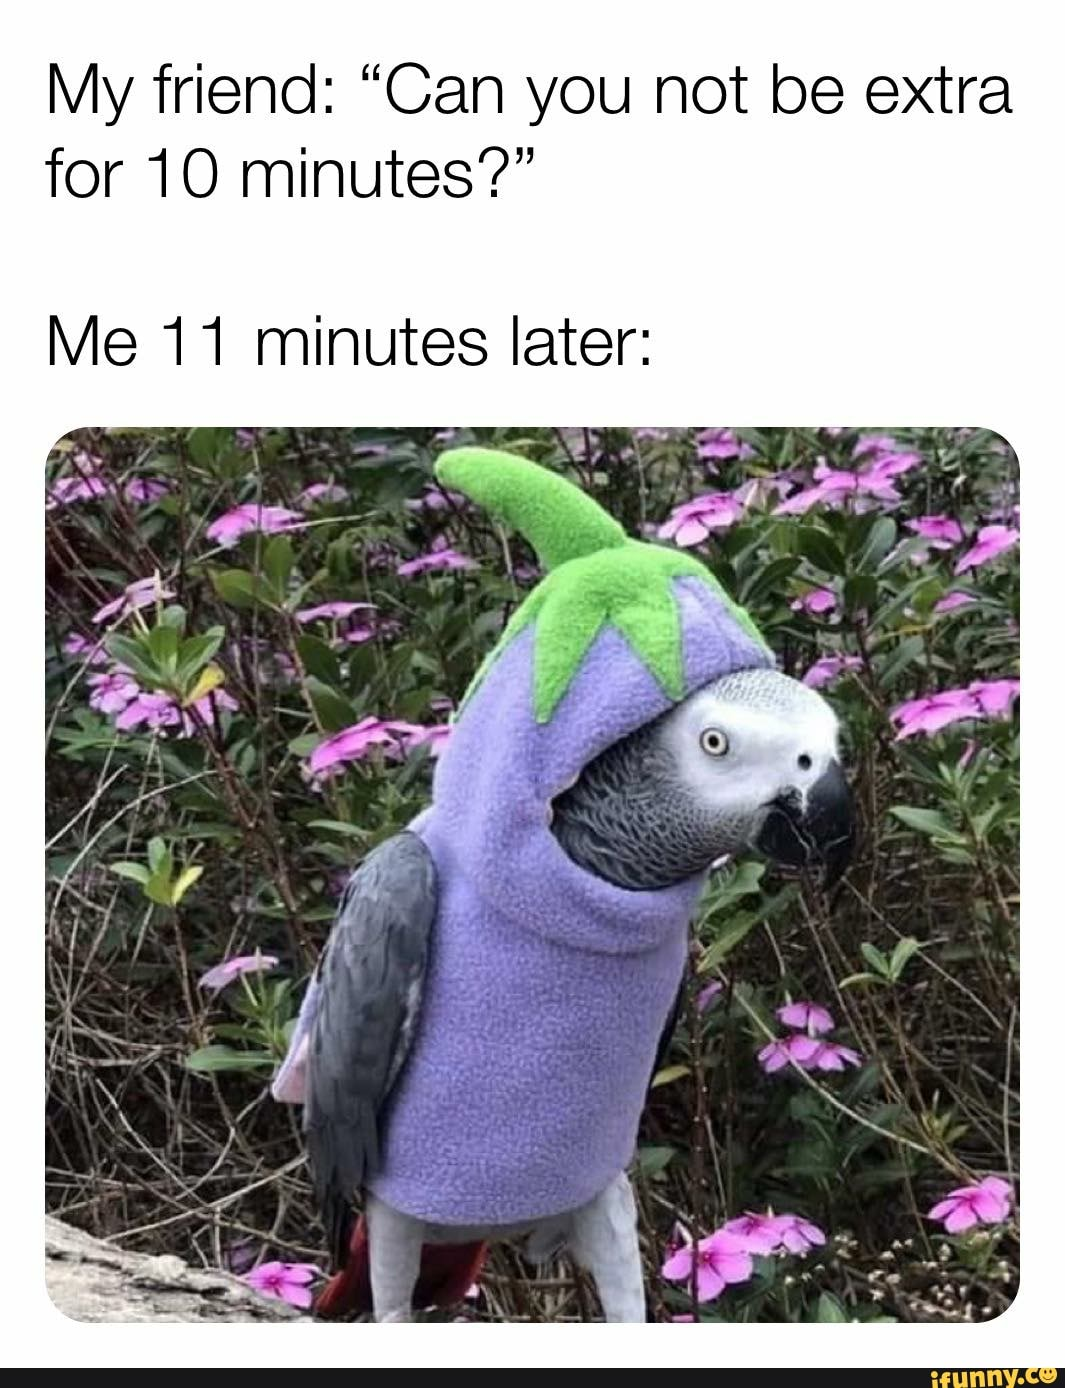 My friend: Can you not be extra for 10 minutes? Me 11 minutes later (bird in a vegetable costume)